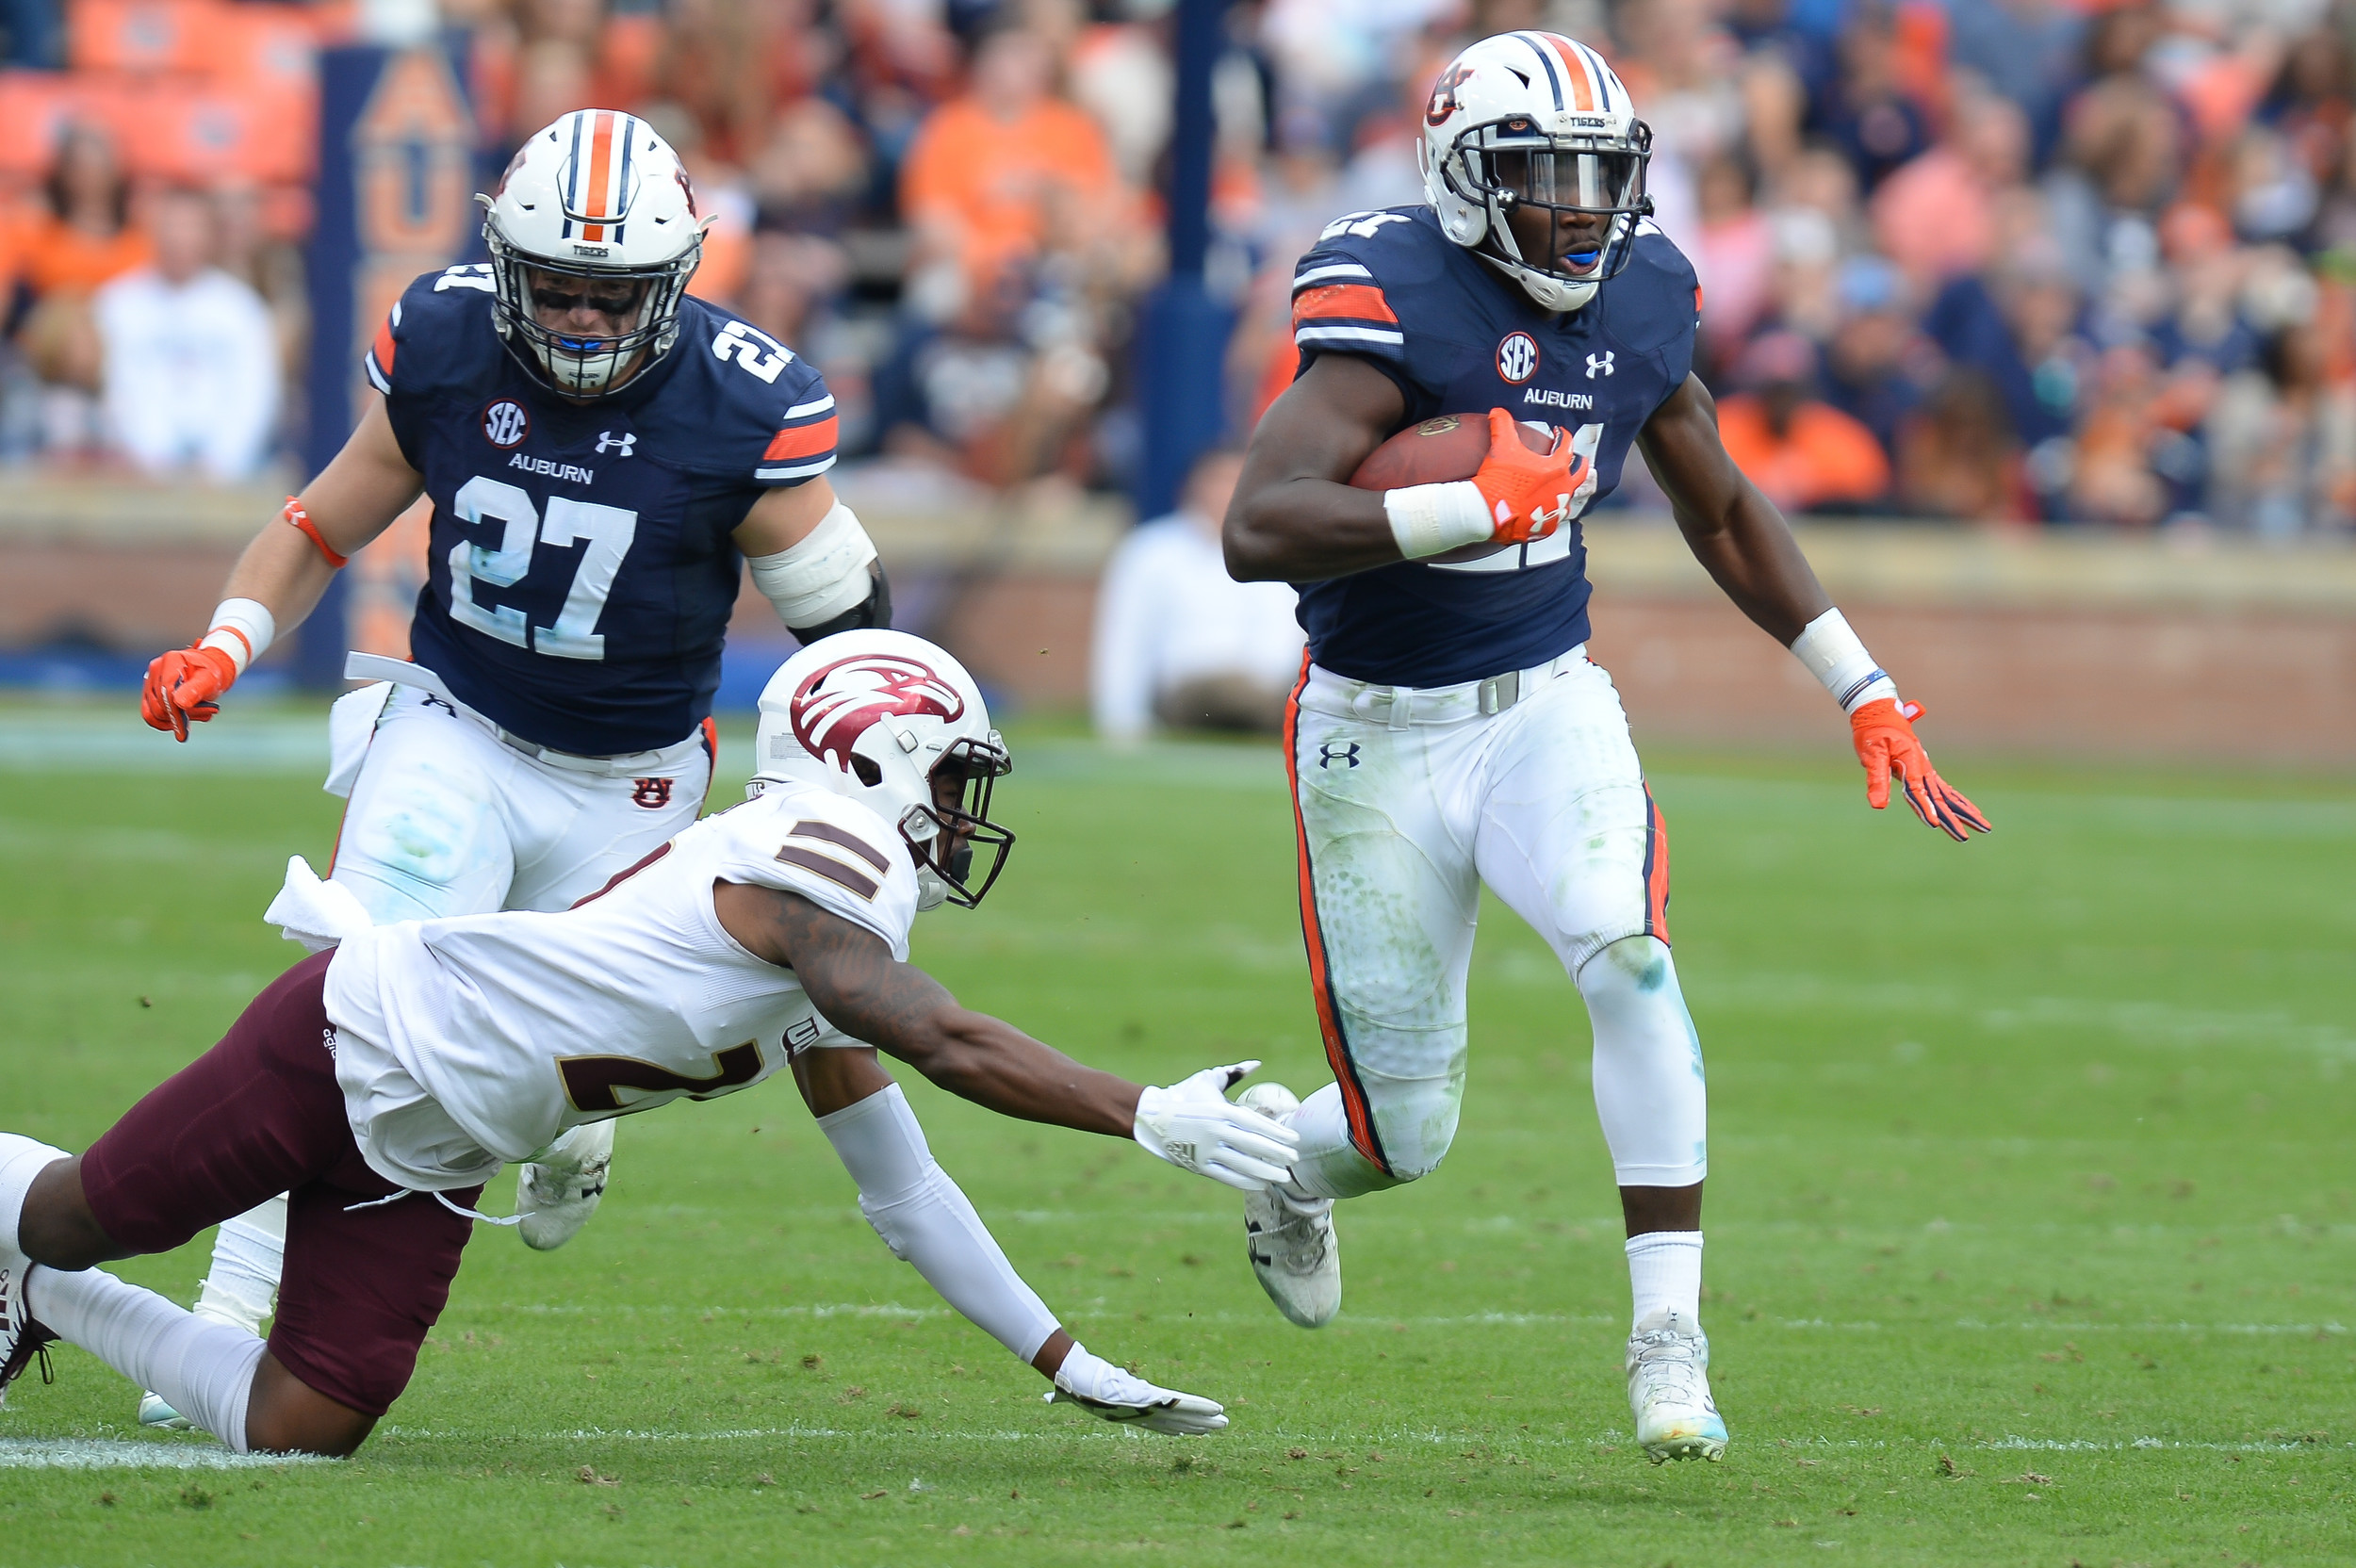 Auburn Tigers running back Kerryon Johnson (21) runs during the first half of Saturday's game, at Jordan-Hare Stadium.